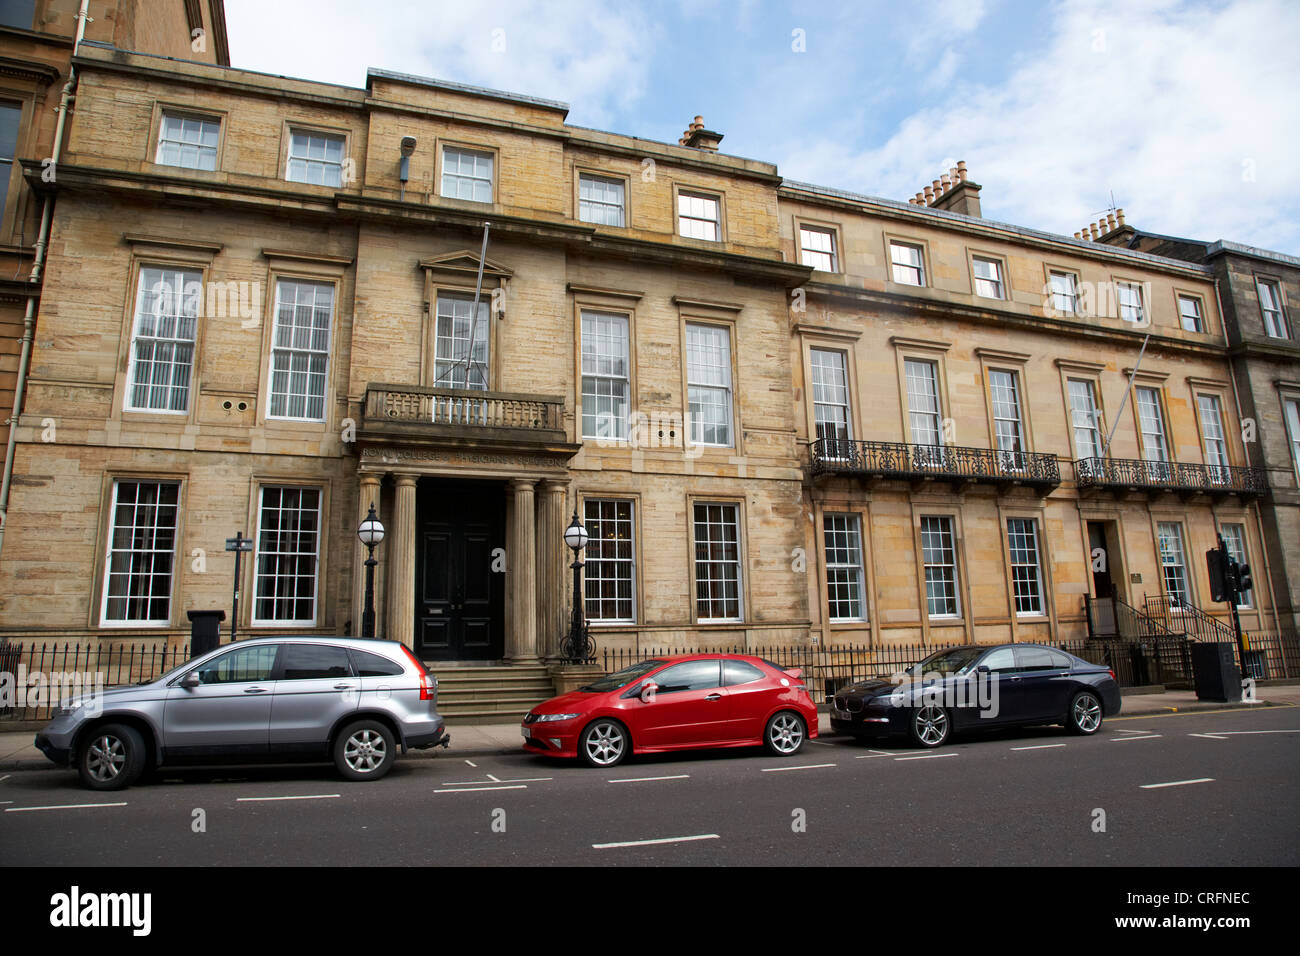 the royal college of physicians and surgeons 242 st vincent street glasgow scotland uk - Stock Image